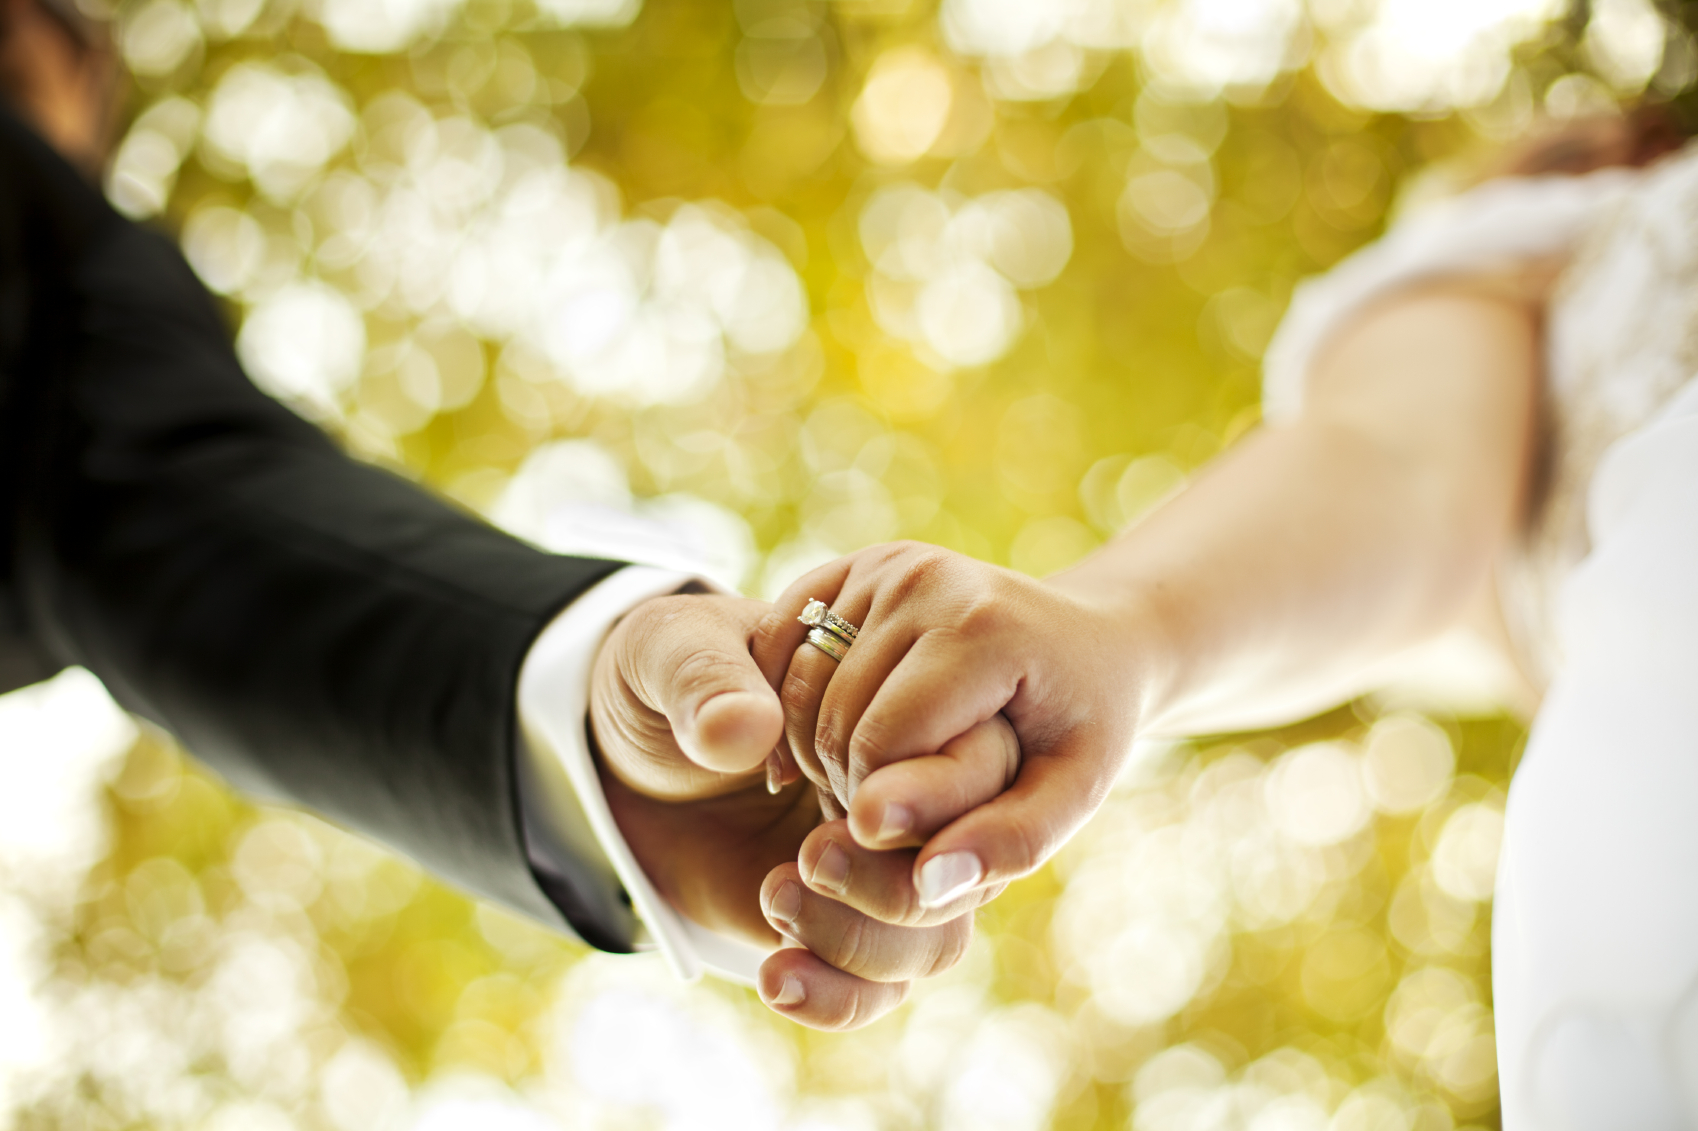 How to Save Marriage Life With Unconditional Love